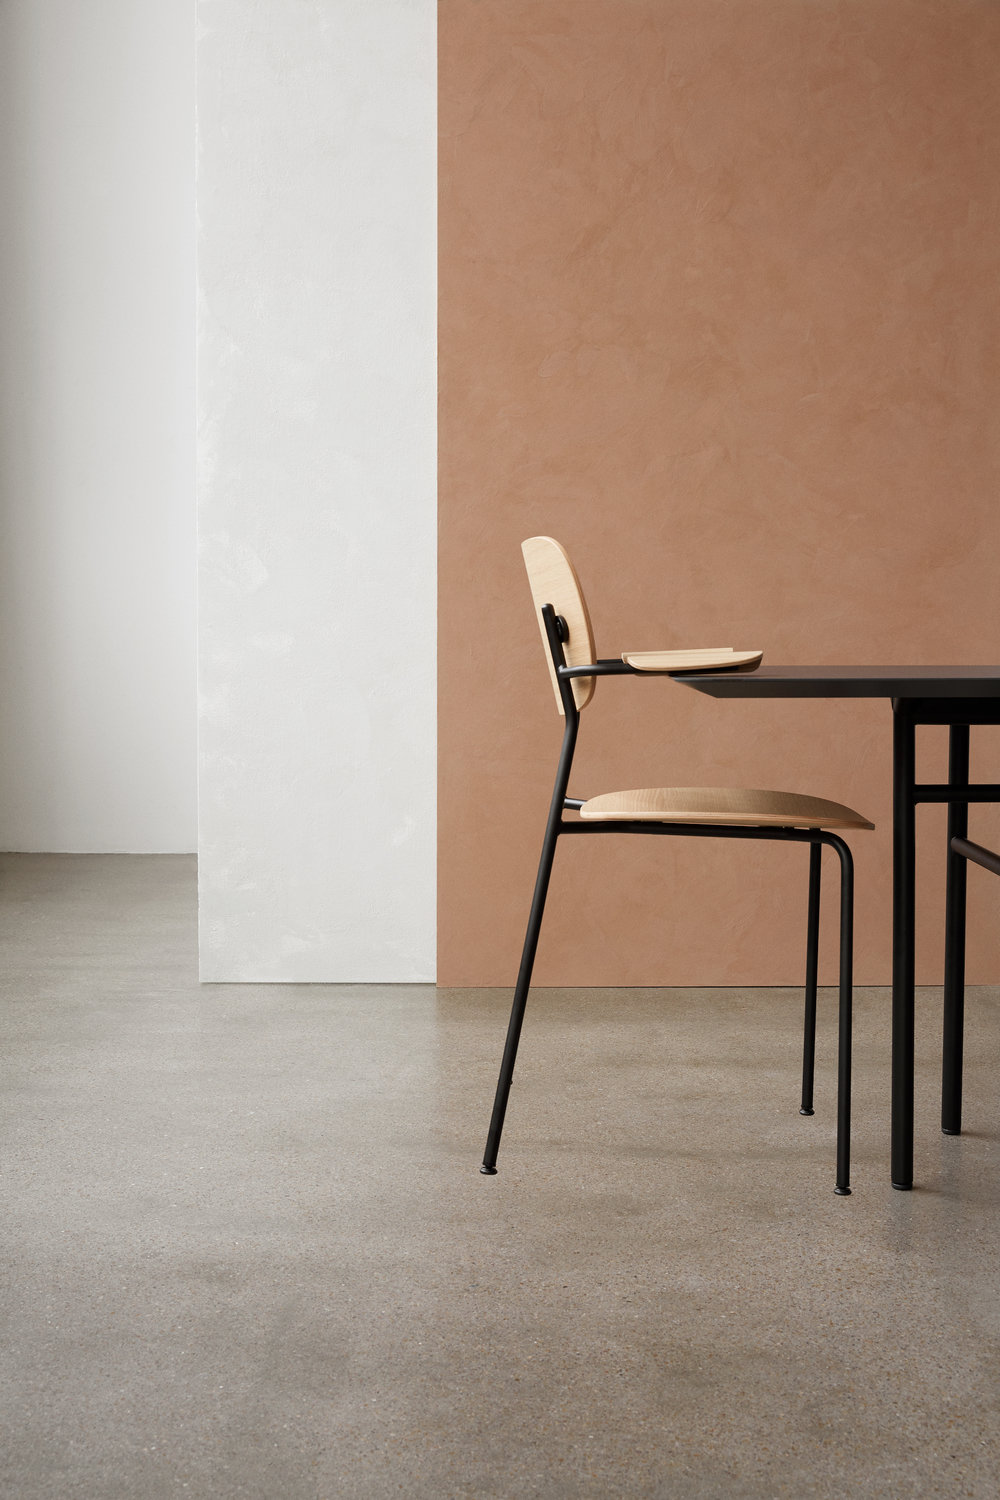 Co Chair The Lab Menu, modern furniture, chair, scandinavian design, scandinavian home 7.jpg